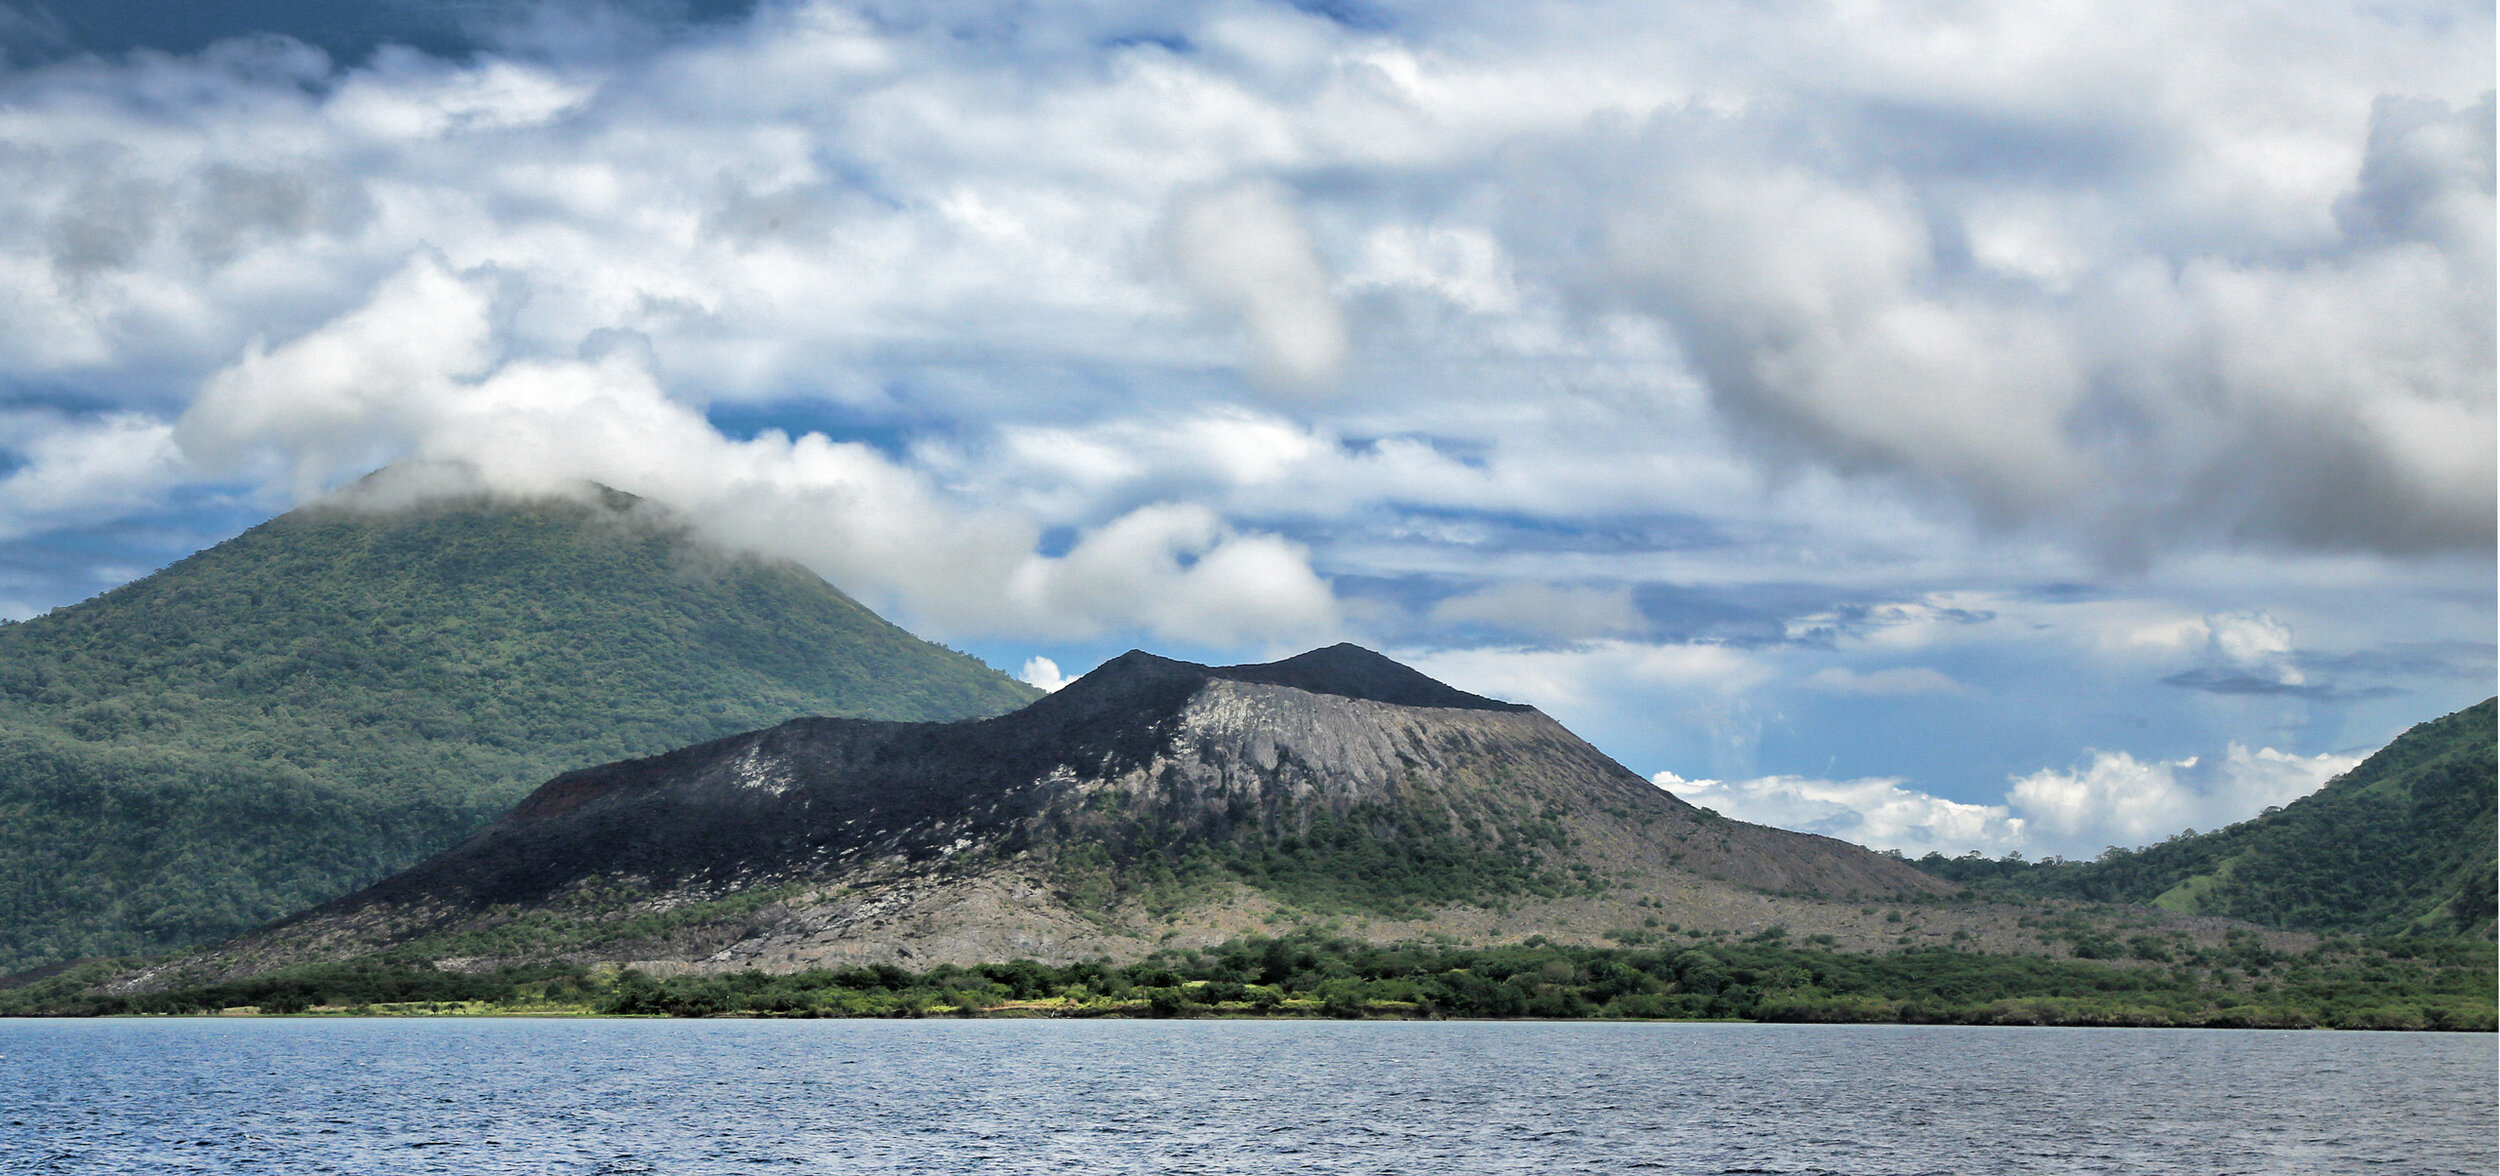 View of Tavurvur from the ship as we enter the harbour within the caldera.  This is approximately the same vantage point as that seen in the dramatic video linked below.